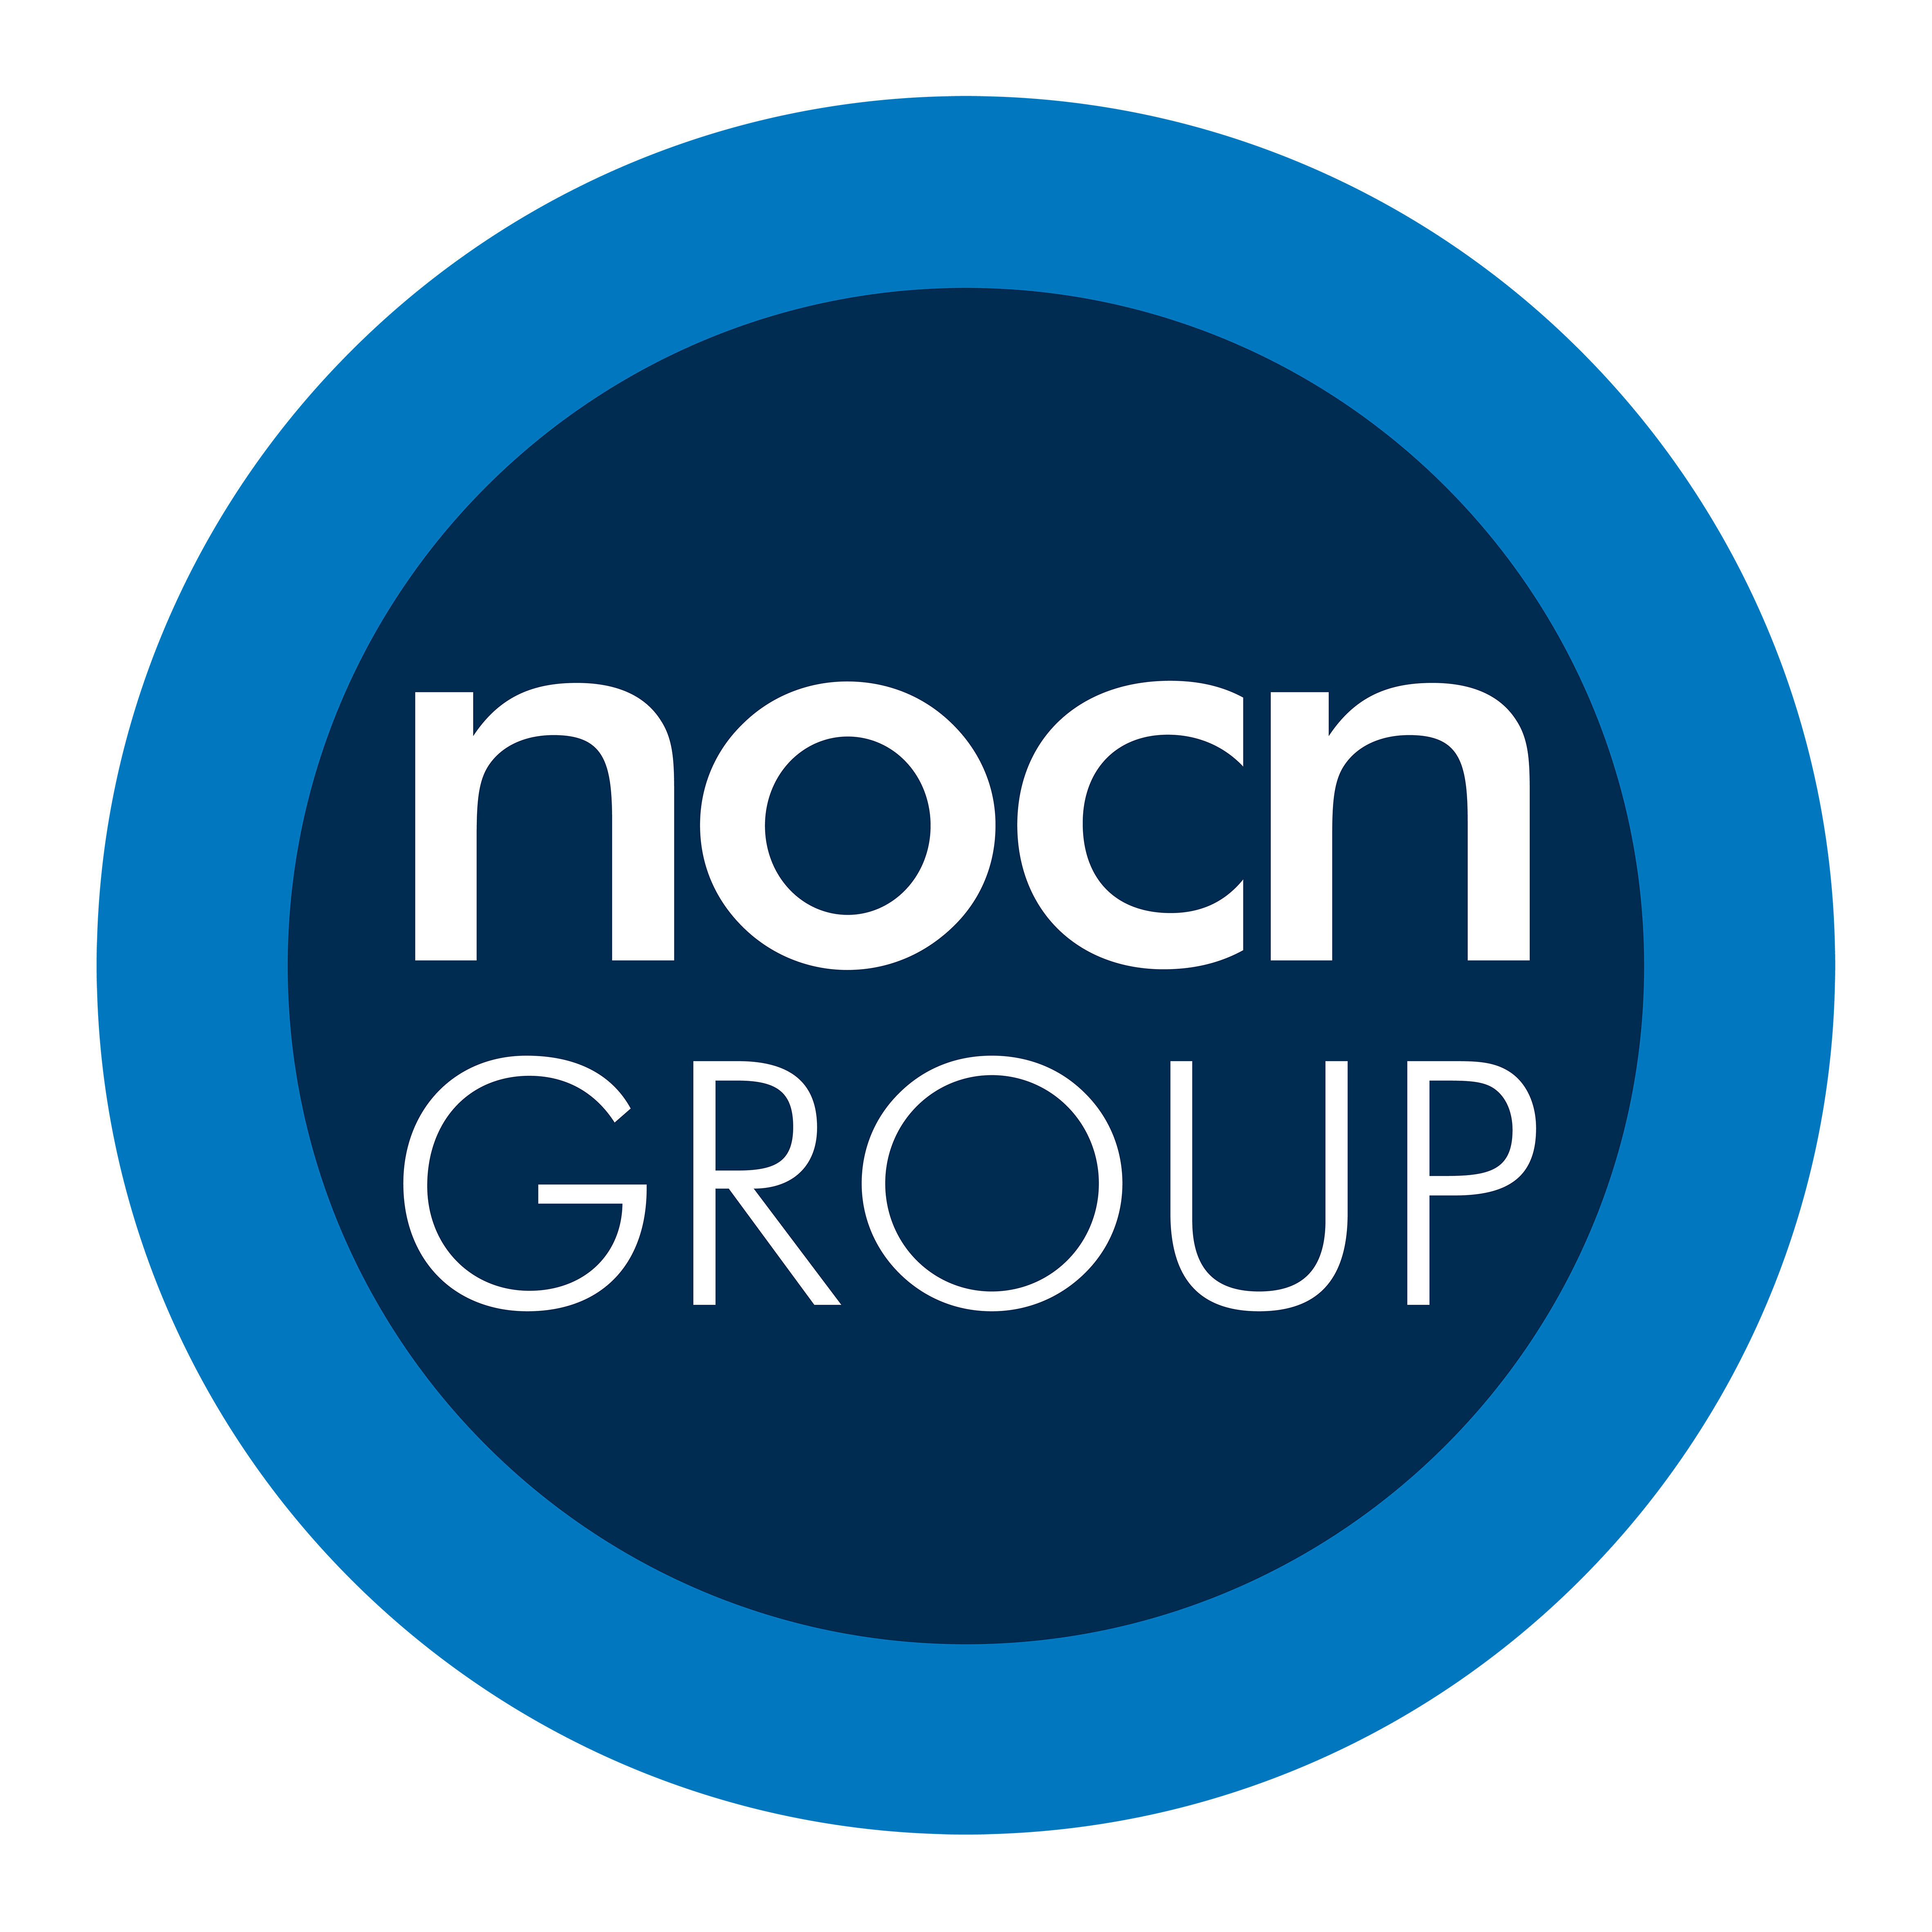 Alternative Assessment Arrangements for NOCN Qualifications 2020/21 - Updated 29 March 2021